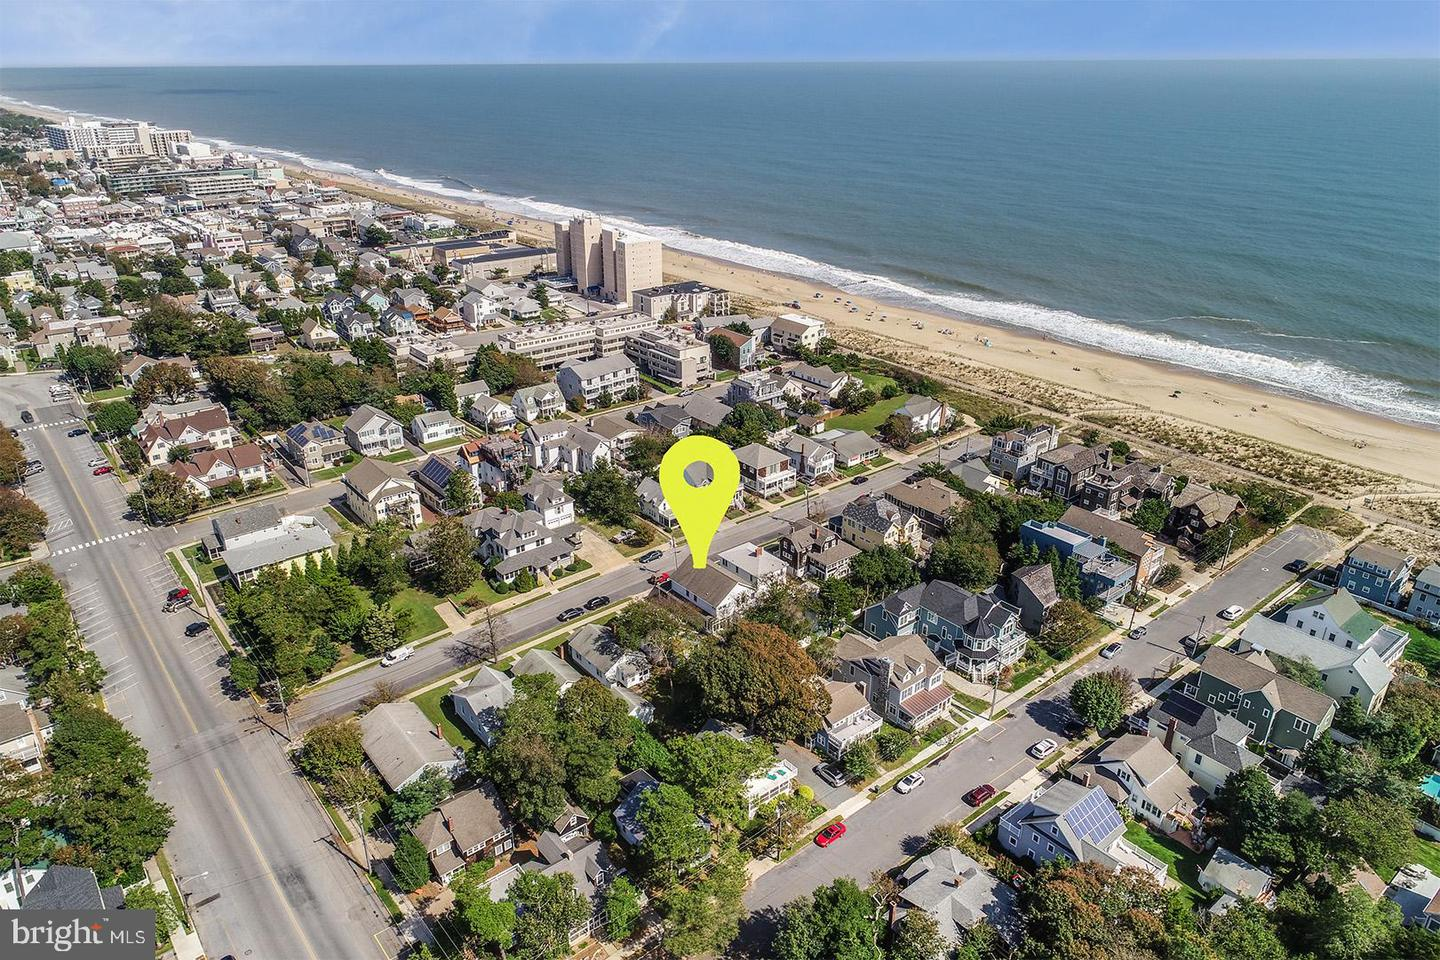 DESU139874-301711163781-2019-05-16-07-32-35 10 New Castle St | Rehoboth Beach, DE Real Estate For Sale | MLS# Desu139874  - Rehoboth Beach Real Estate - Bryce Lingo and Shaun Tull REALTORS, Rehoboth Beach, Delaware